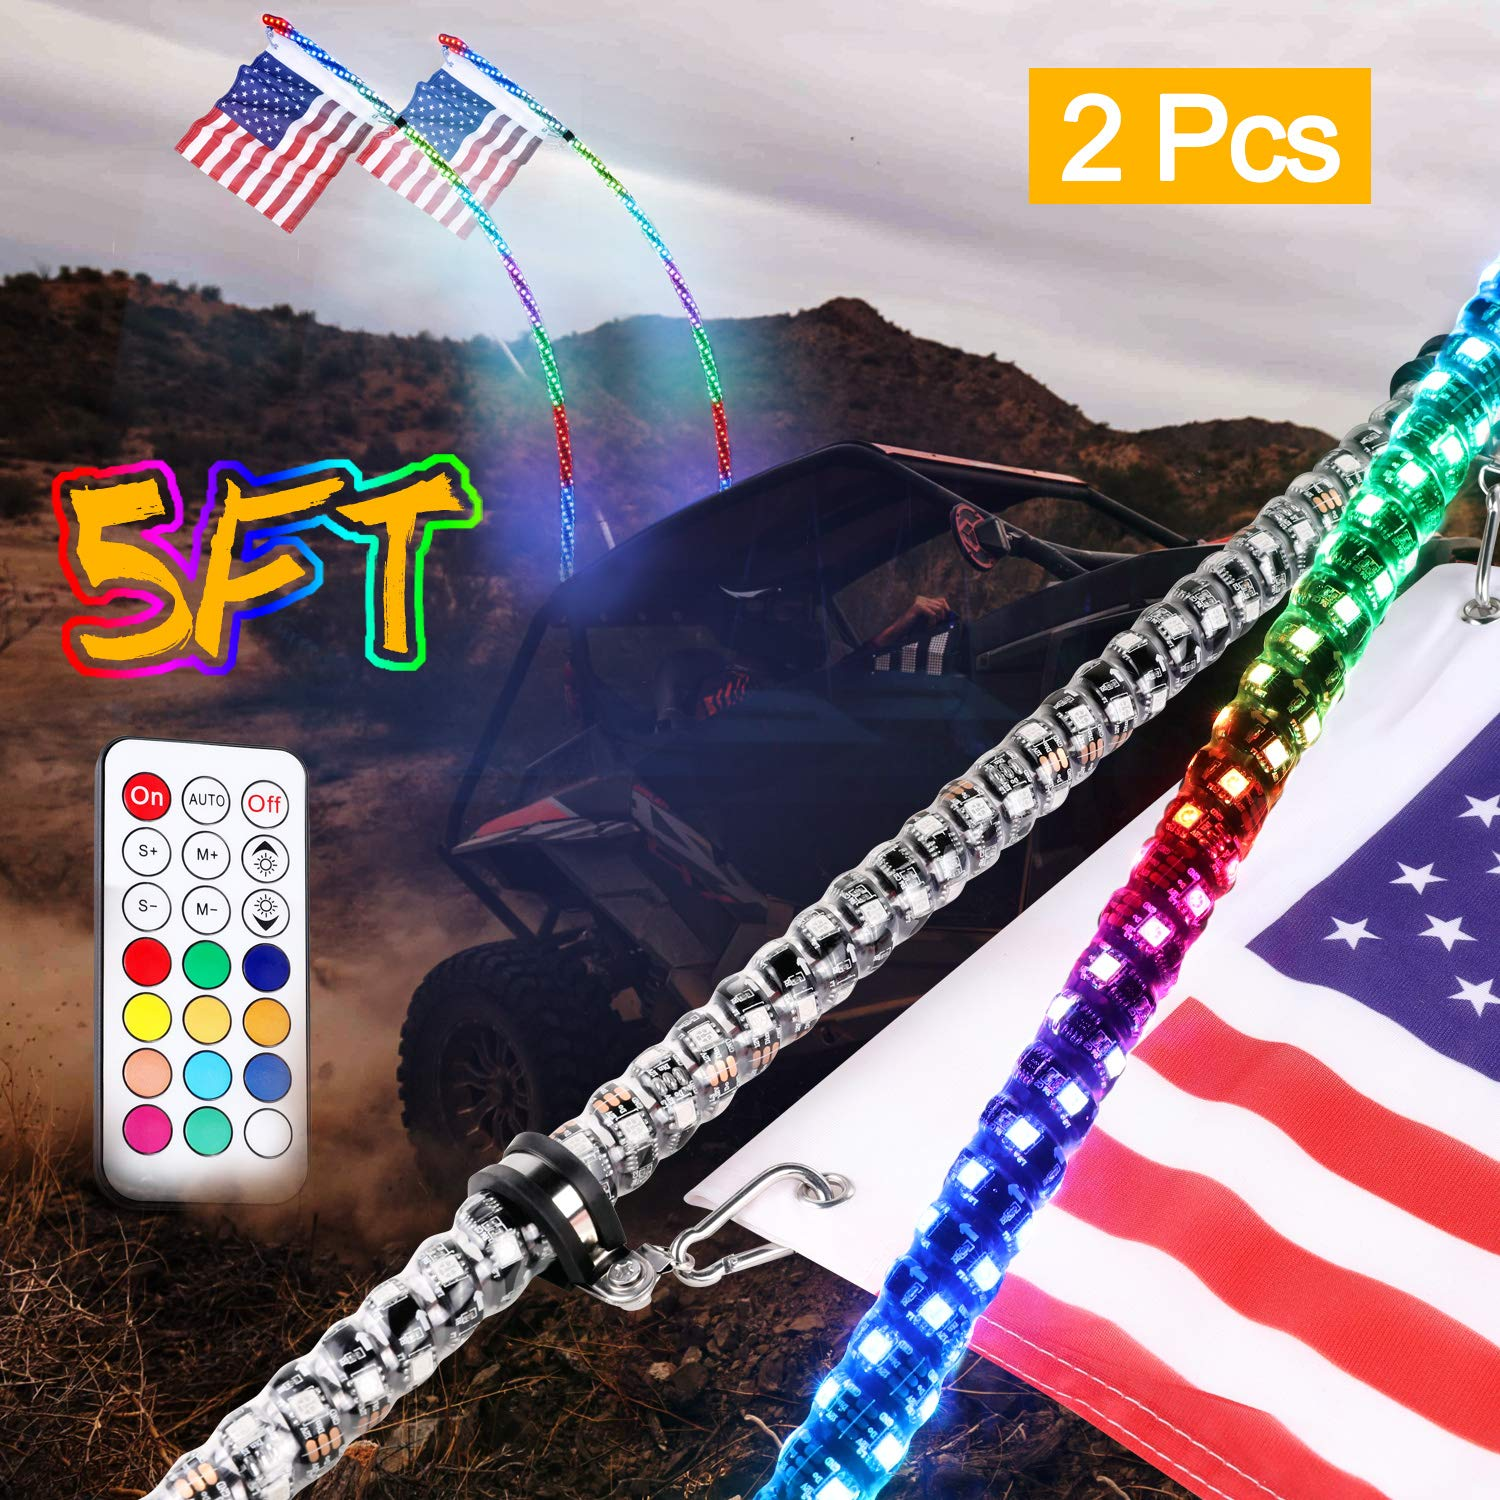 LED Whip Lights, Wayup 2Pack 5FT Lighted Whips with Flag Remote Control 360° Spiral Dancing/Chasing Light Antenna LED Whips for UTV ATV RZR Polaris 4X4 SXS Buggy Dune Truck by Wayup